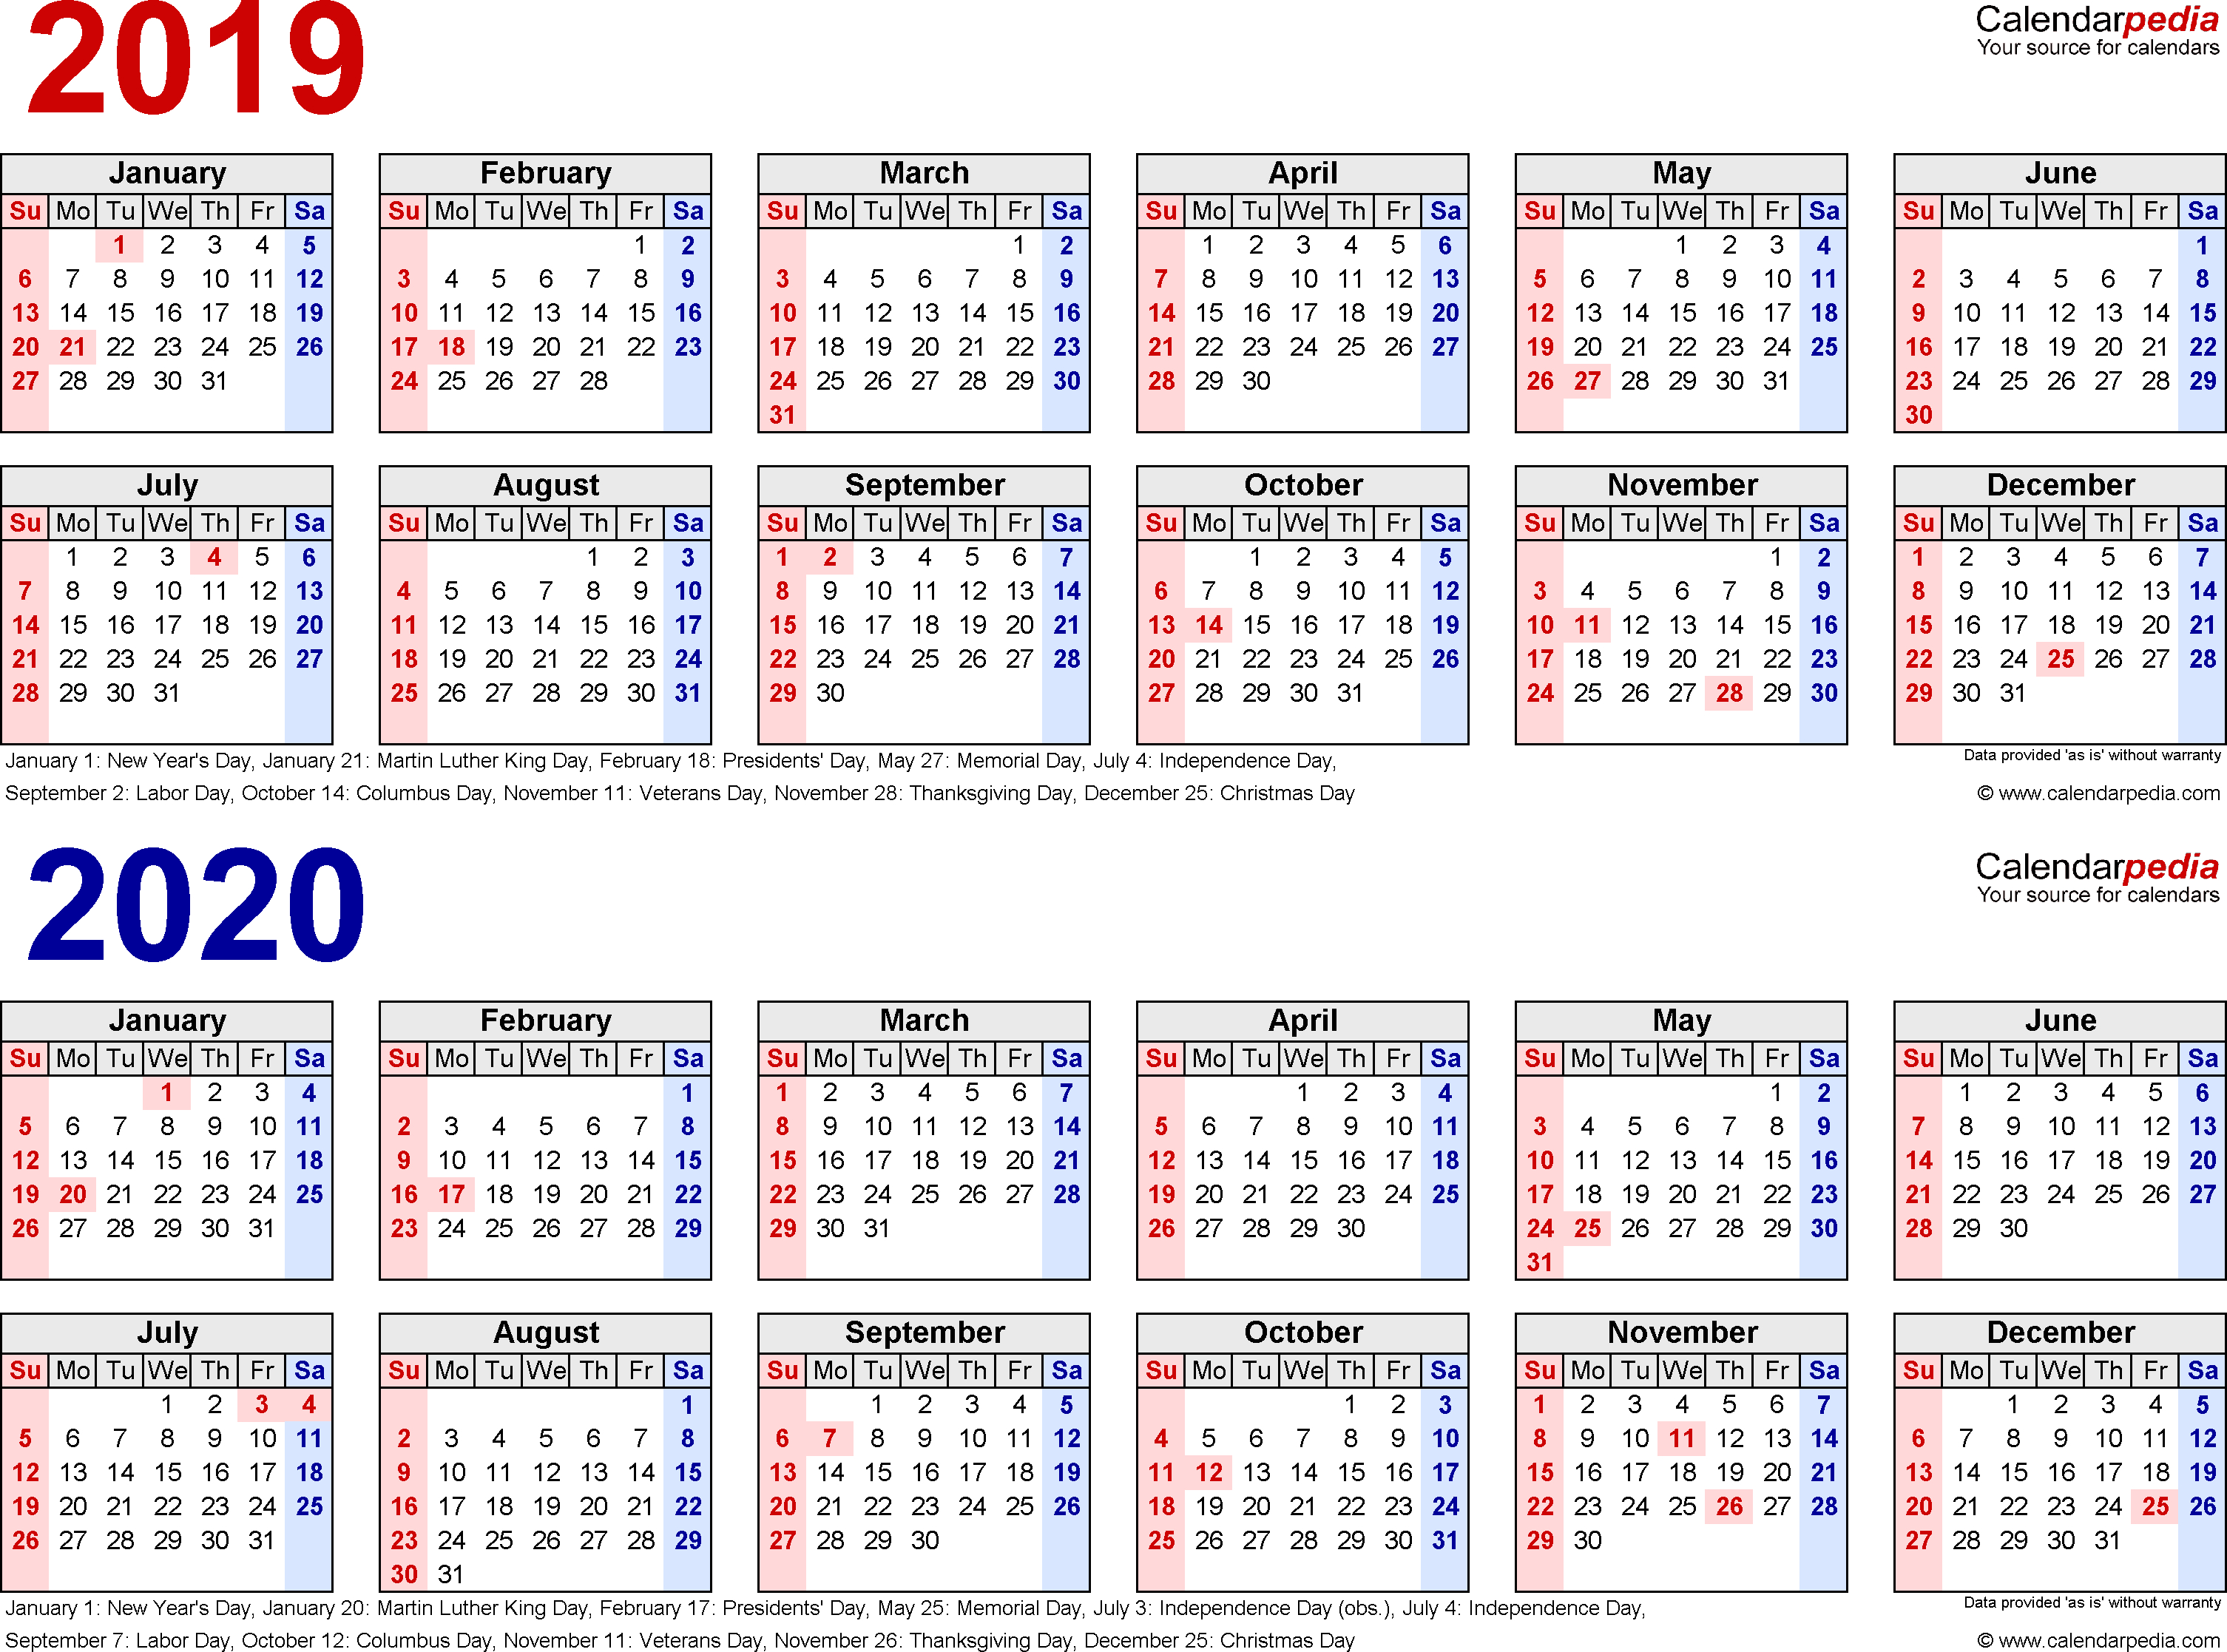 2019-2020 Calendar - Free Printable Two-Year Word Calendars for 2019/2020 Calander To Write On